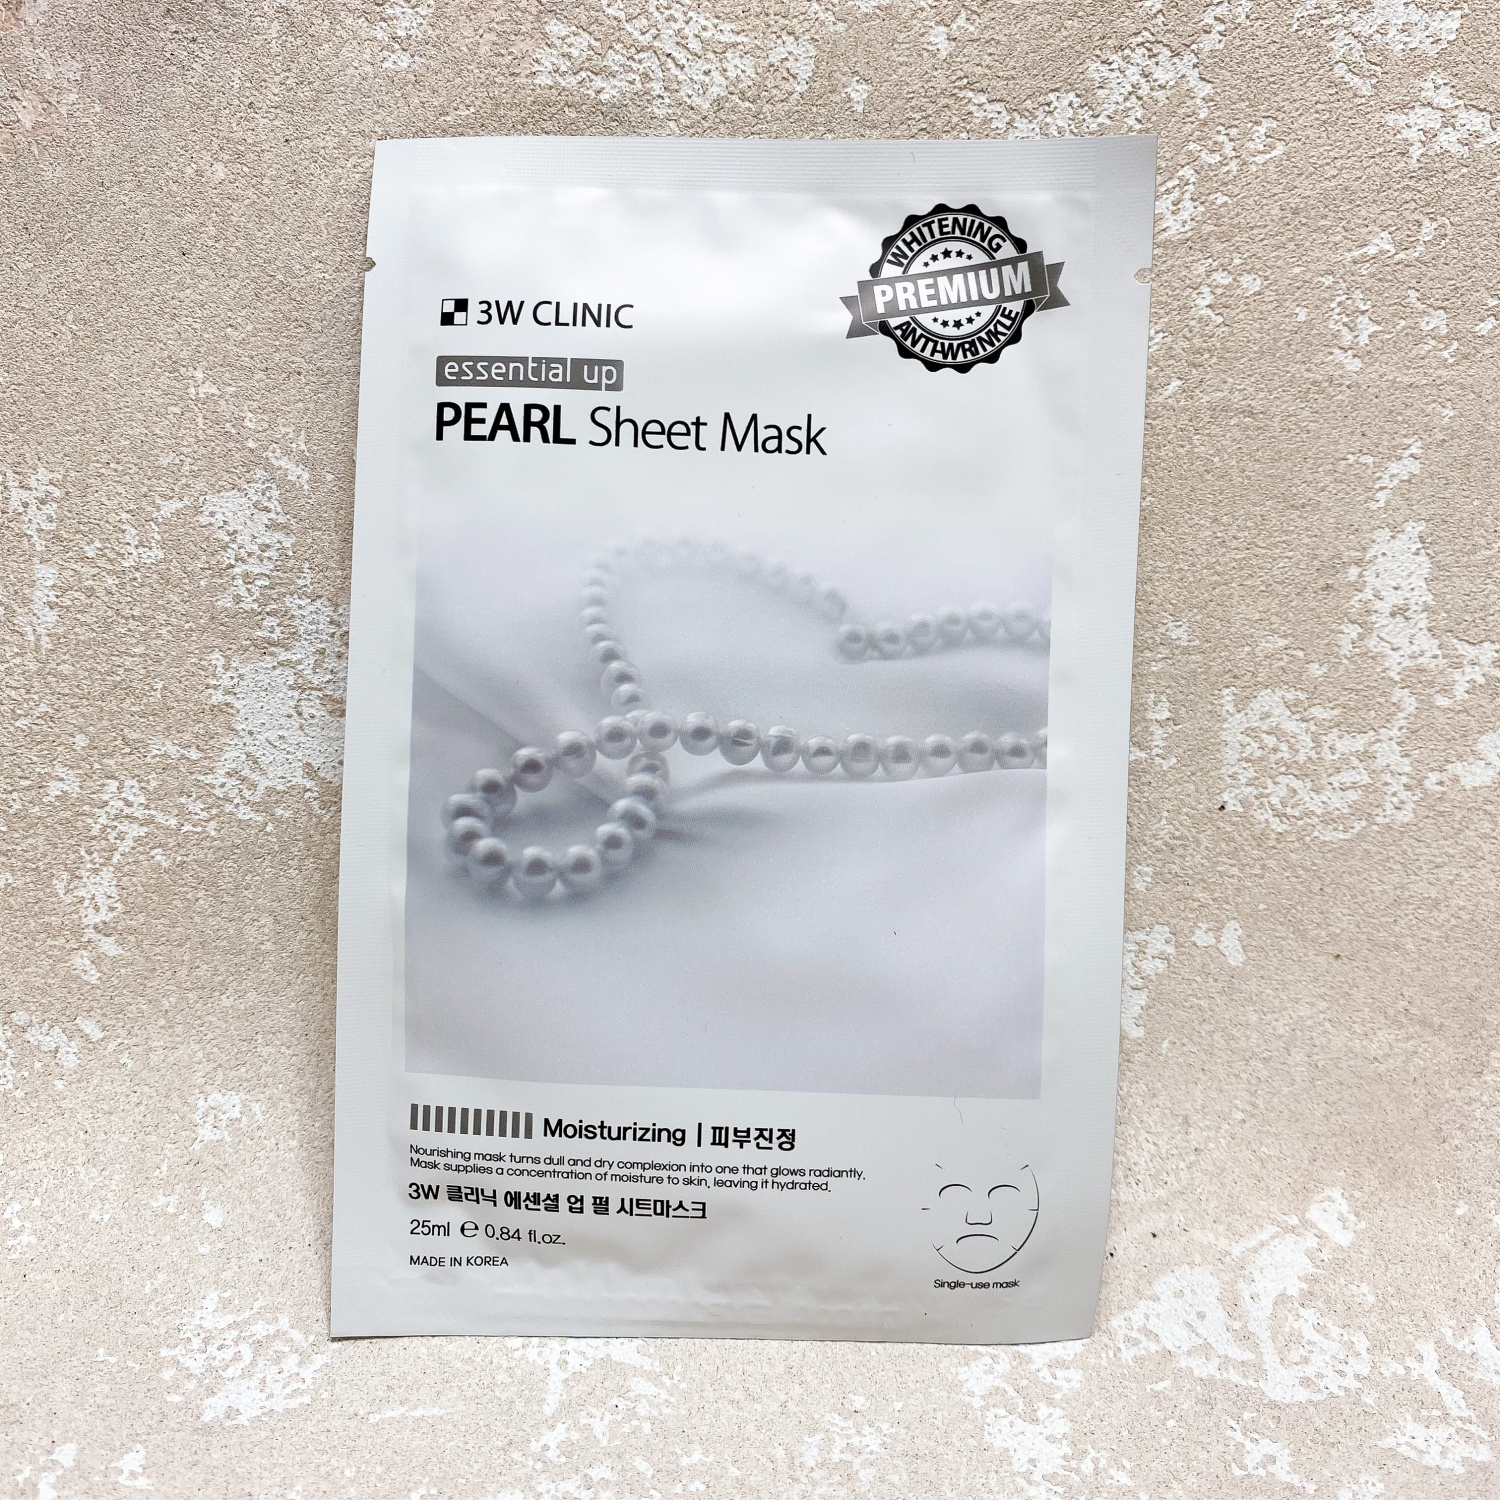 3W Clinic Essential Up Pearl Sheet Mask